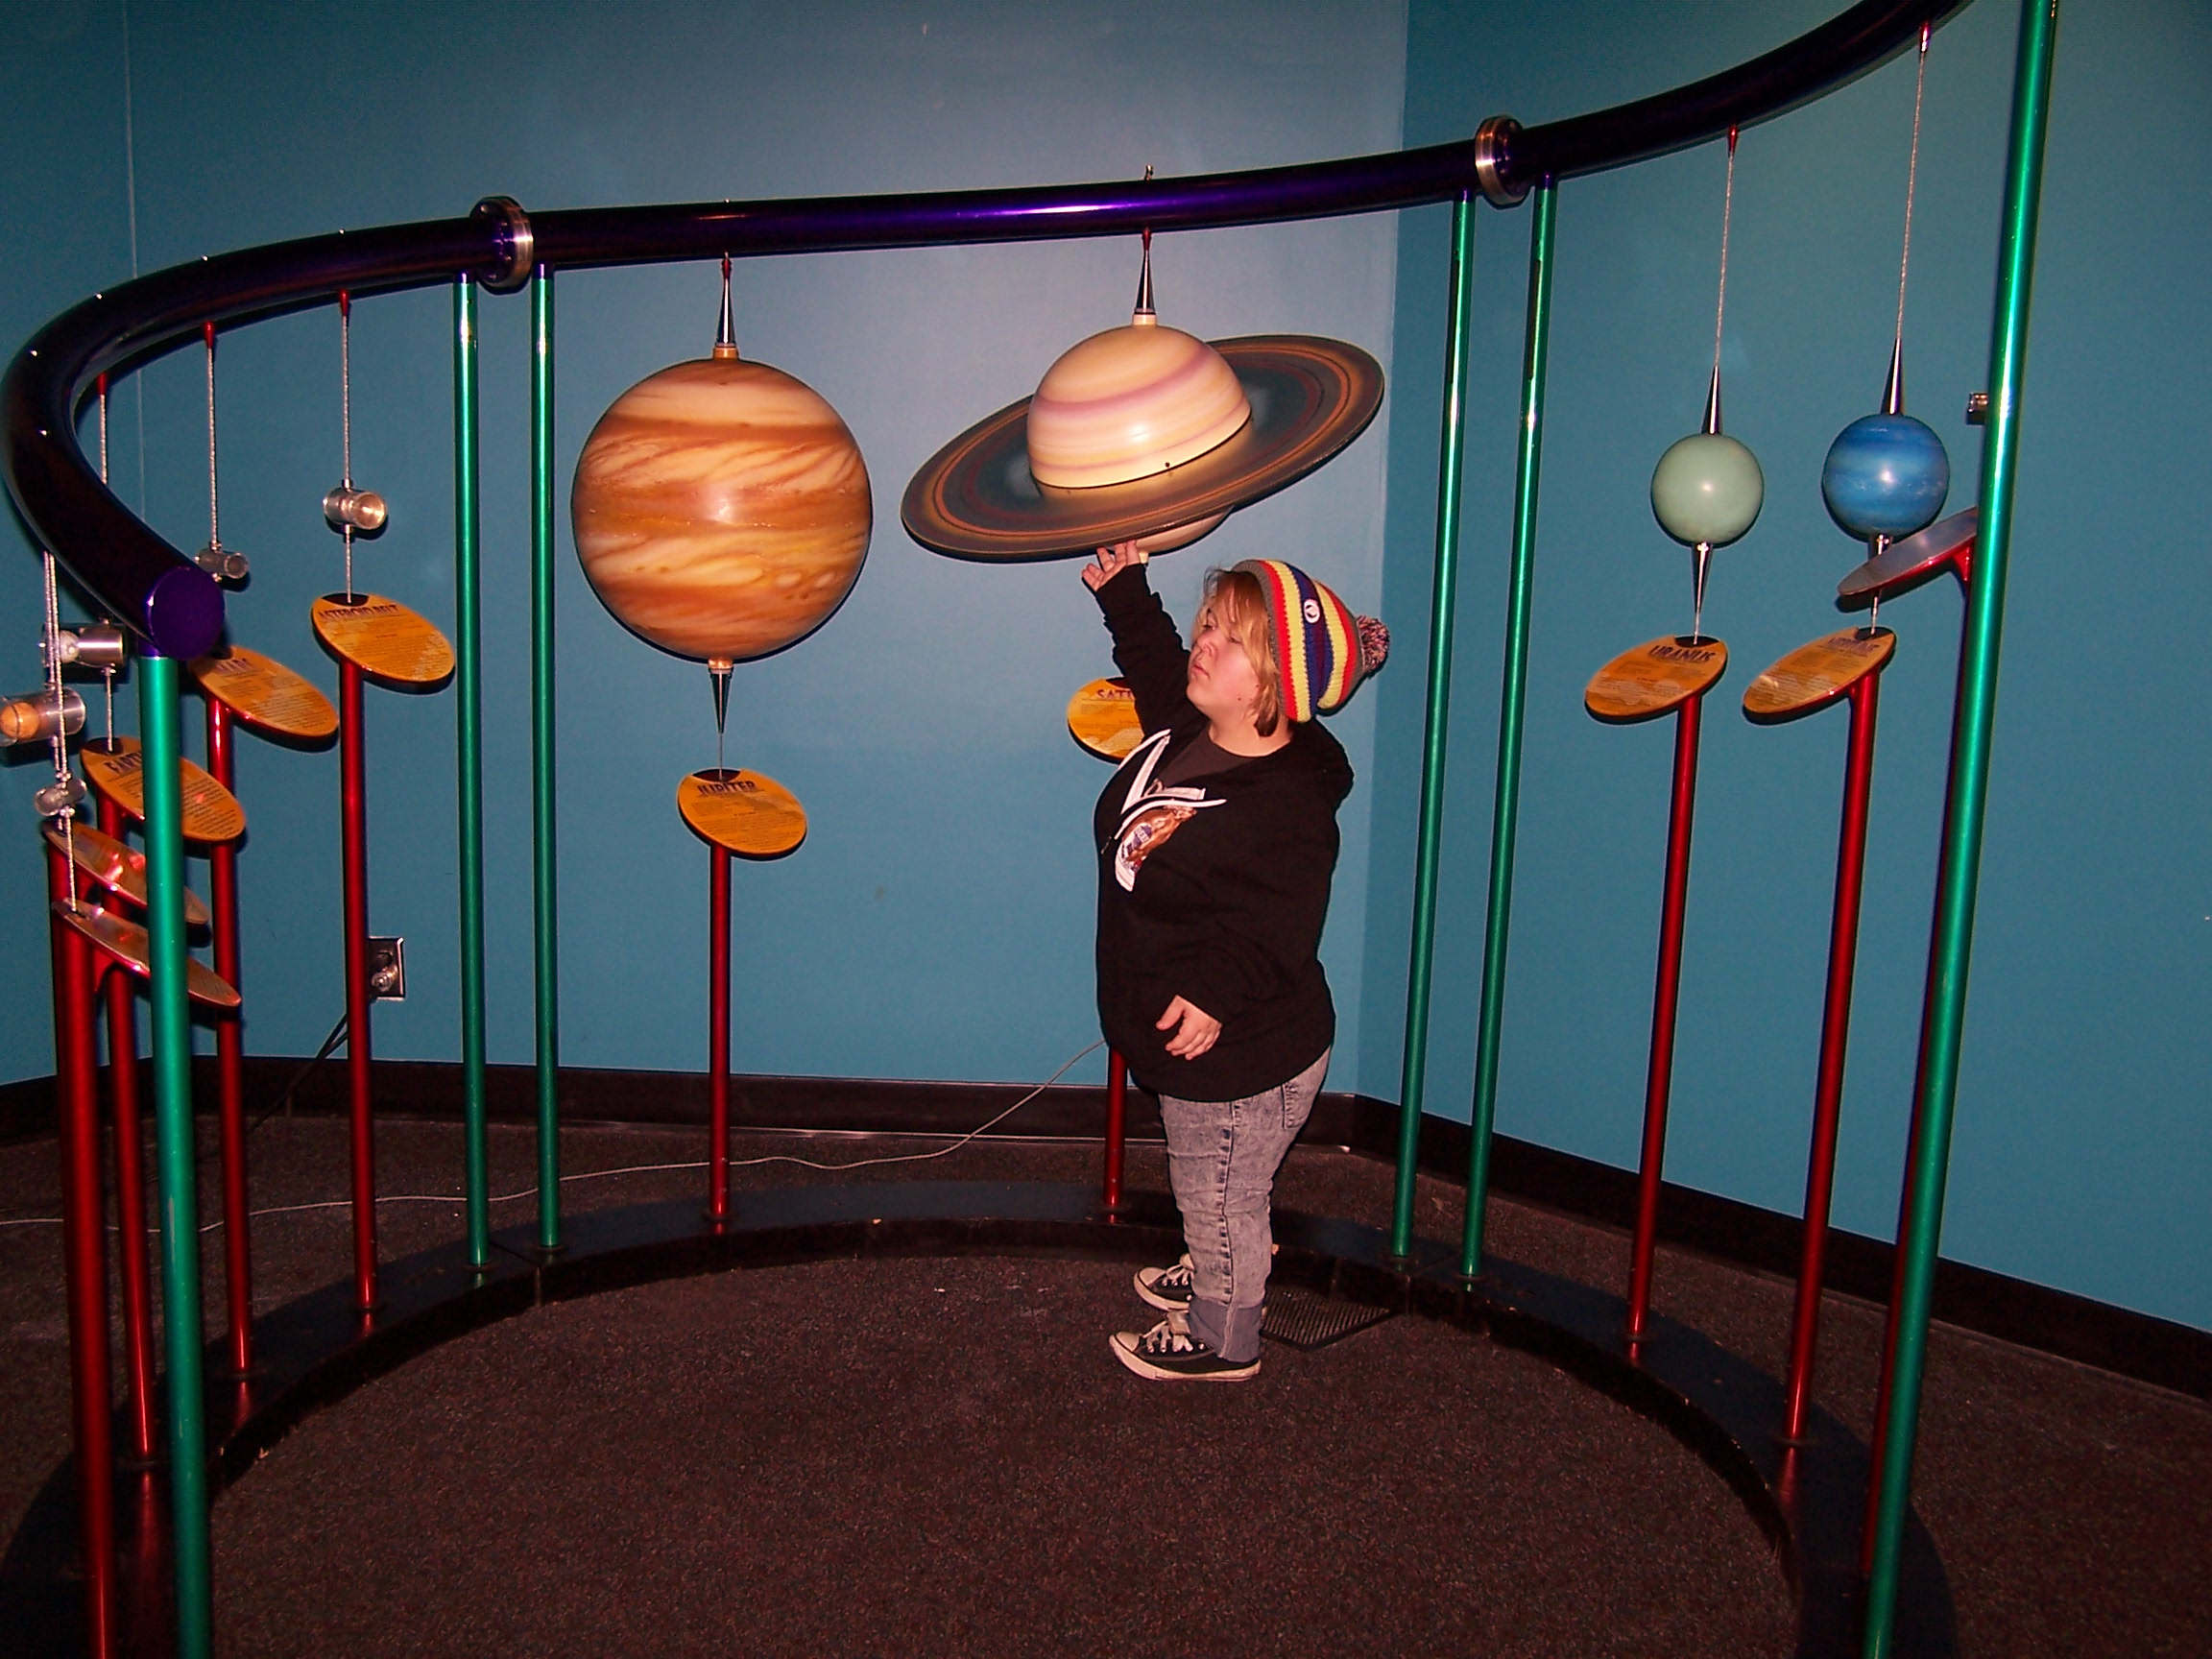 Pacific Science Center - 3d solar system model Image